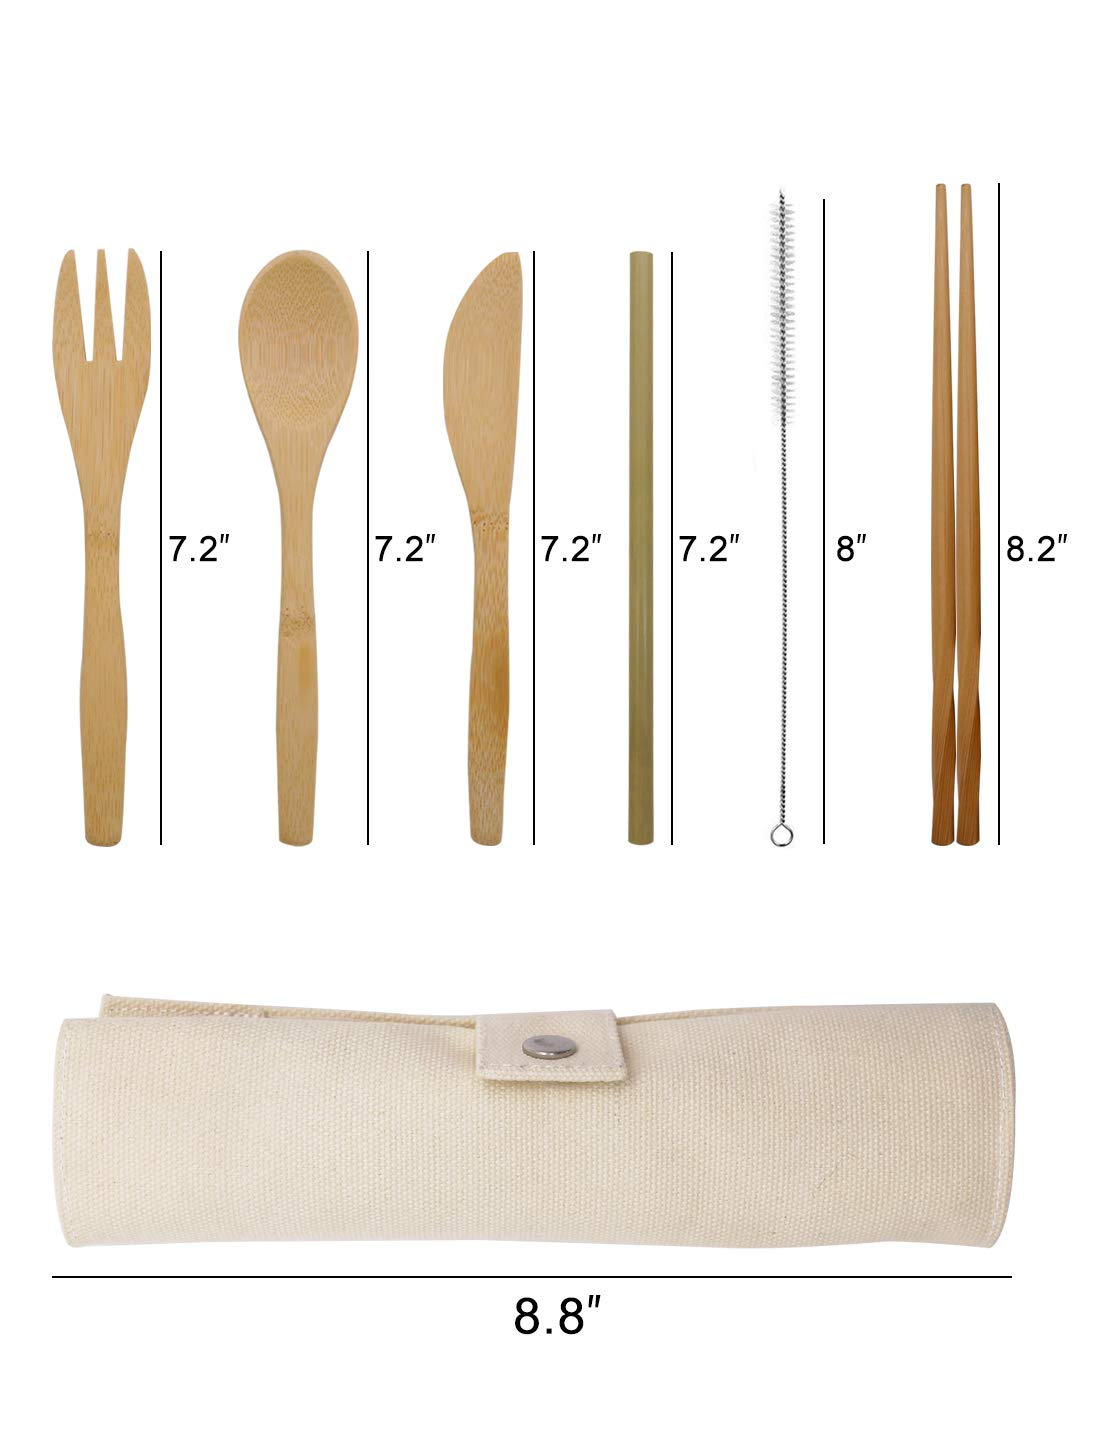 Bamboo Cutlery Set, Travel Cutlery Set Eco Friendly Flatware Set Camping Cutlery Set with Travel Pouch Knife Fork Spoon and Chopsticks Straw by HansGo